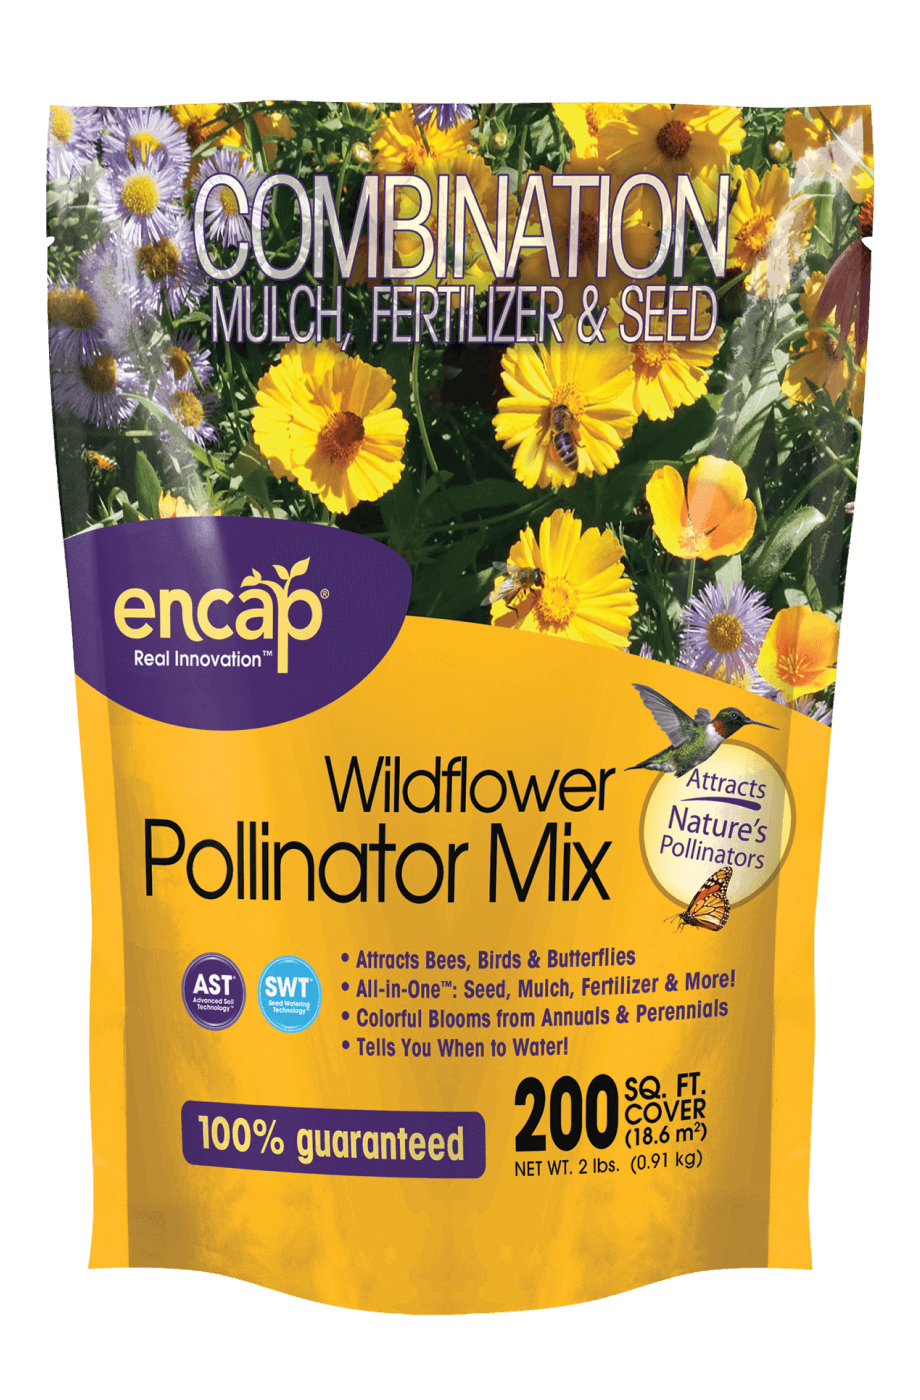 Wildflower Pollinator Mix Package